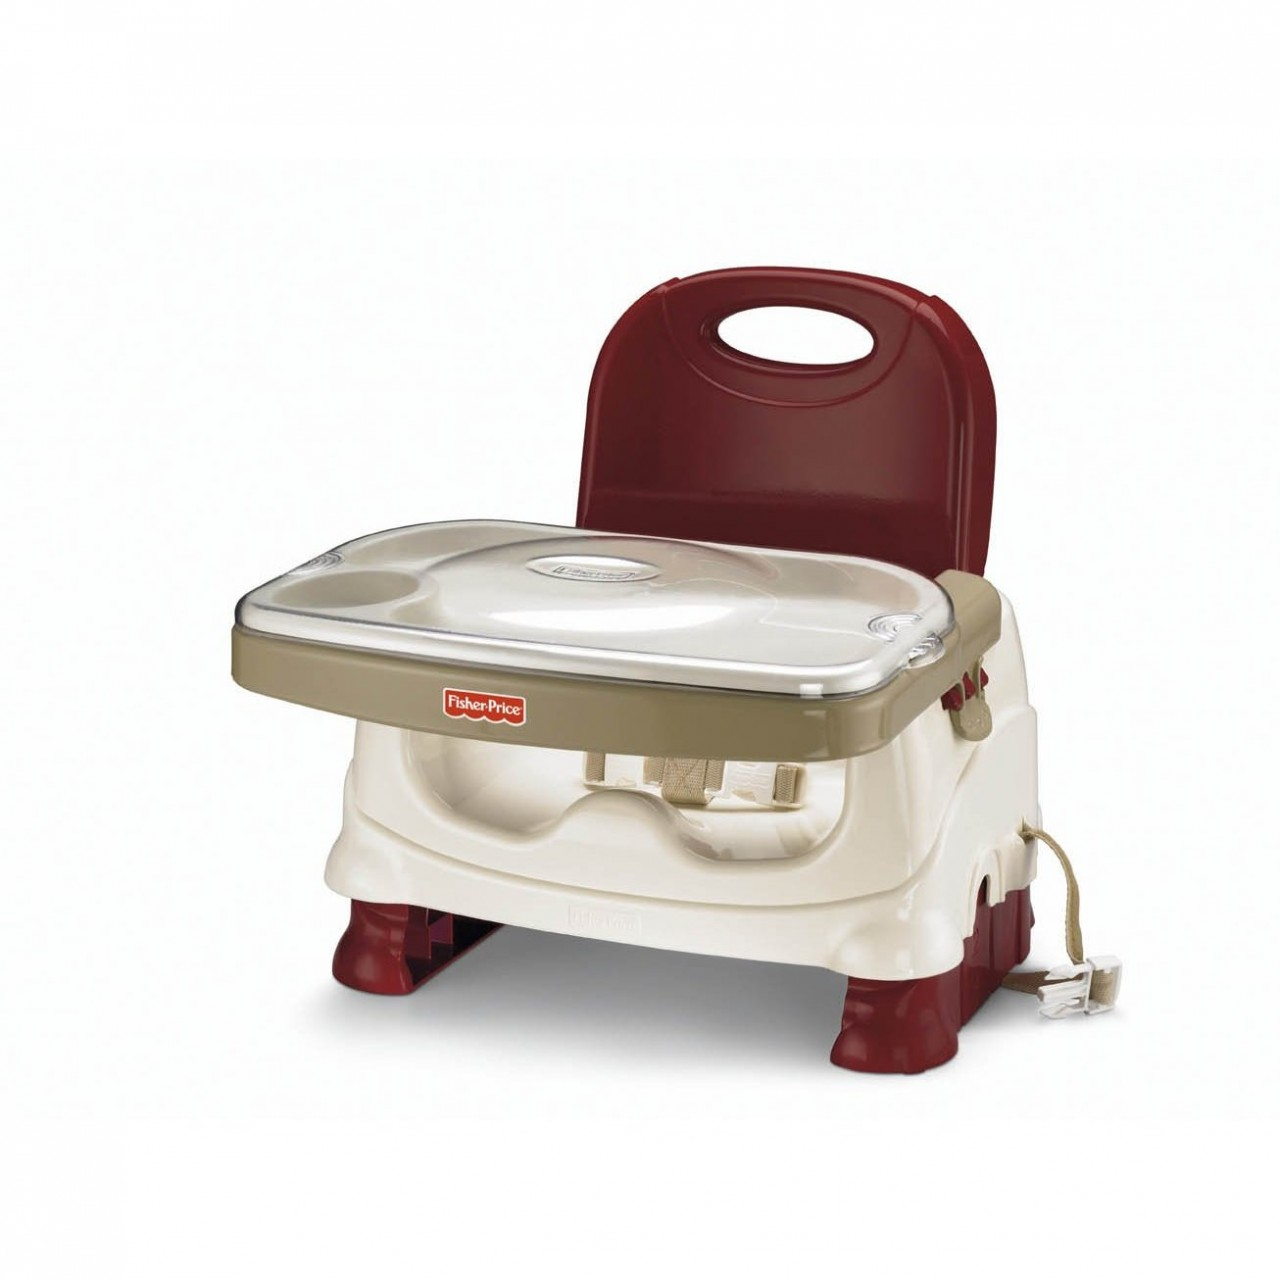 CADEIRA FISHER PRICE DELUXE RED/WHITE